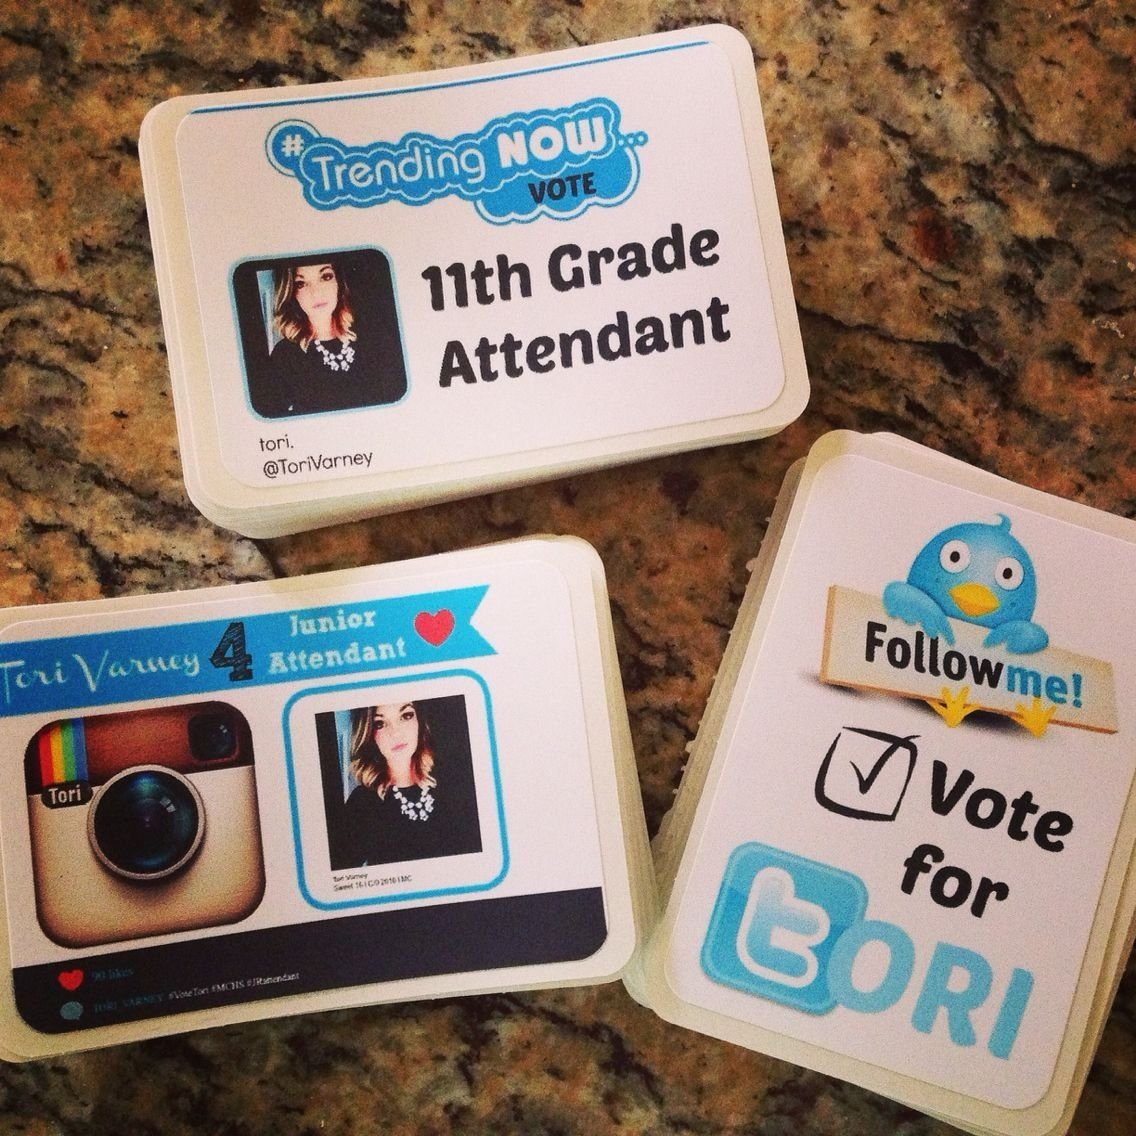 10 Cute Campaign Ideas For High School pinashley wallace on my designs pinterest craft 1 2020